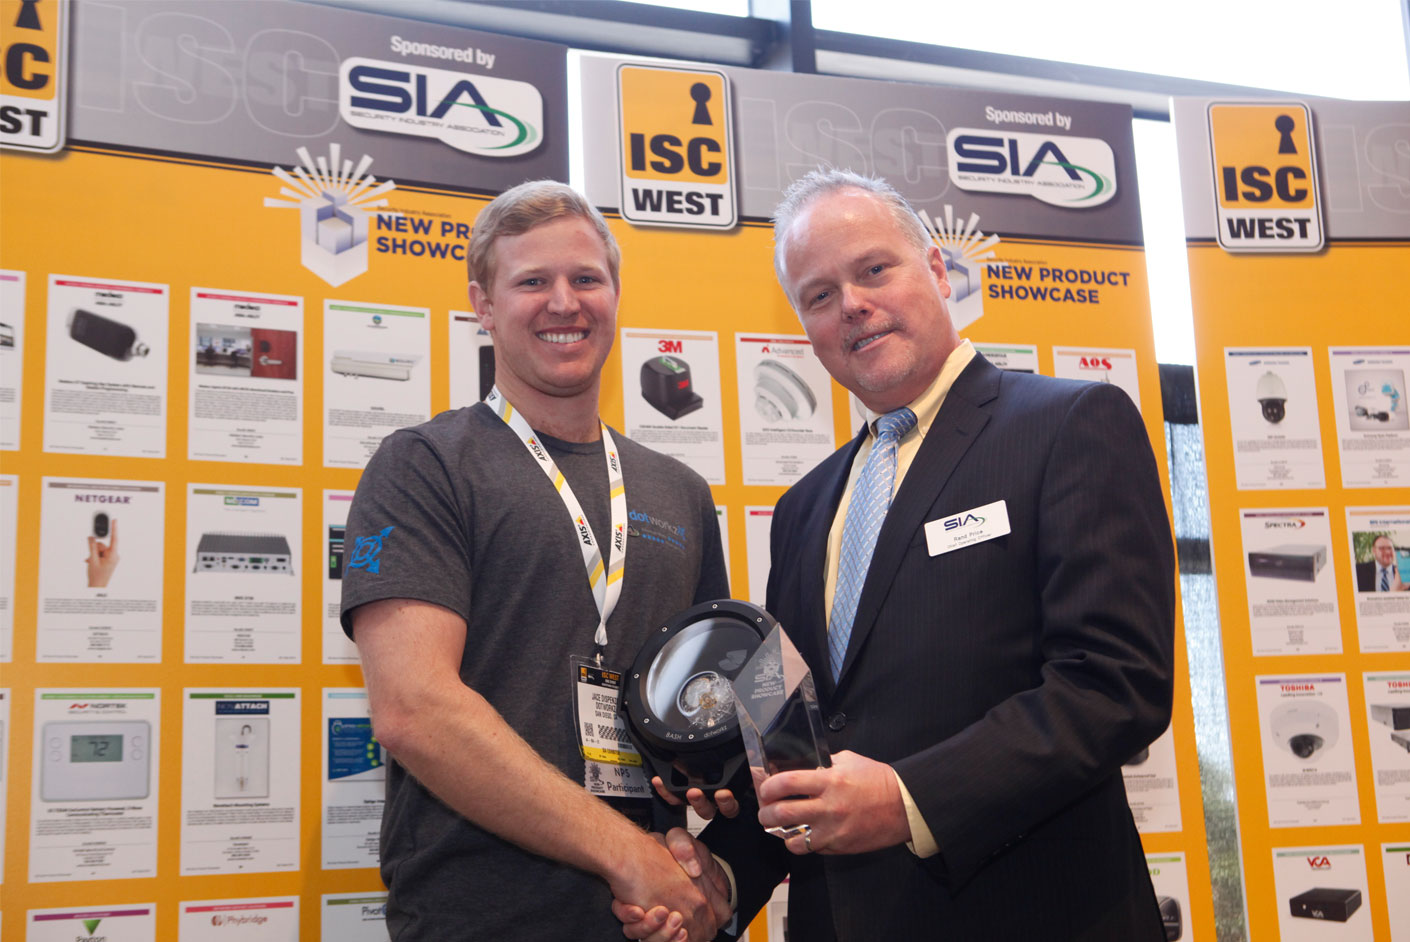 dotworkz 2015 bash wins new product showcase jace dispenza accepting award from sia ceo don erickson